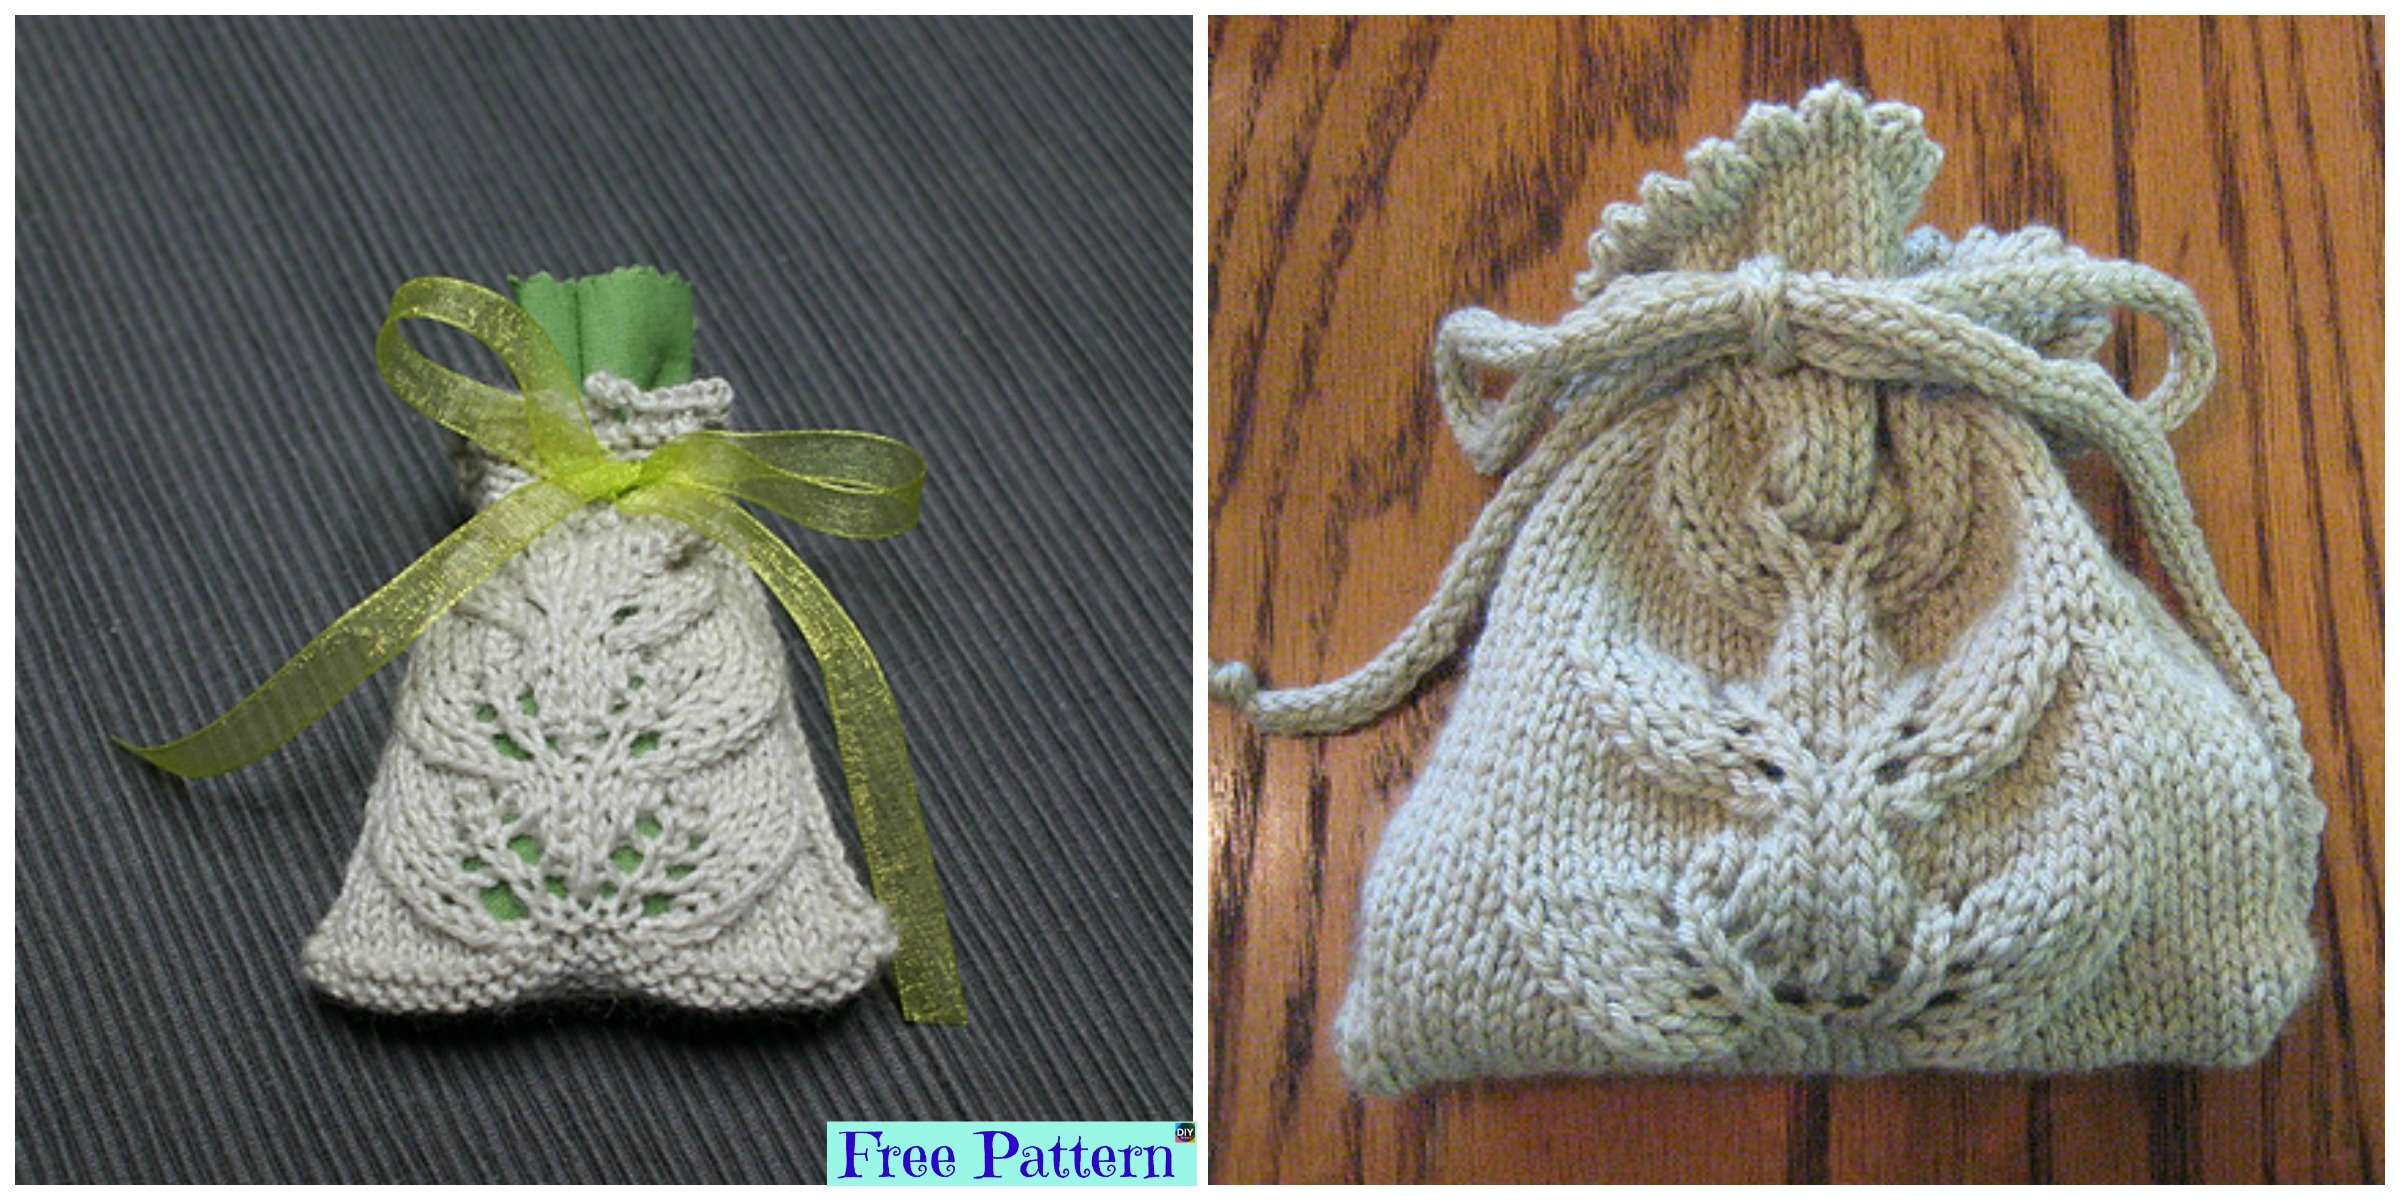 Cute Knit Small Lace Bag – Free Pattern